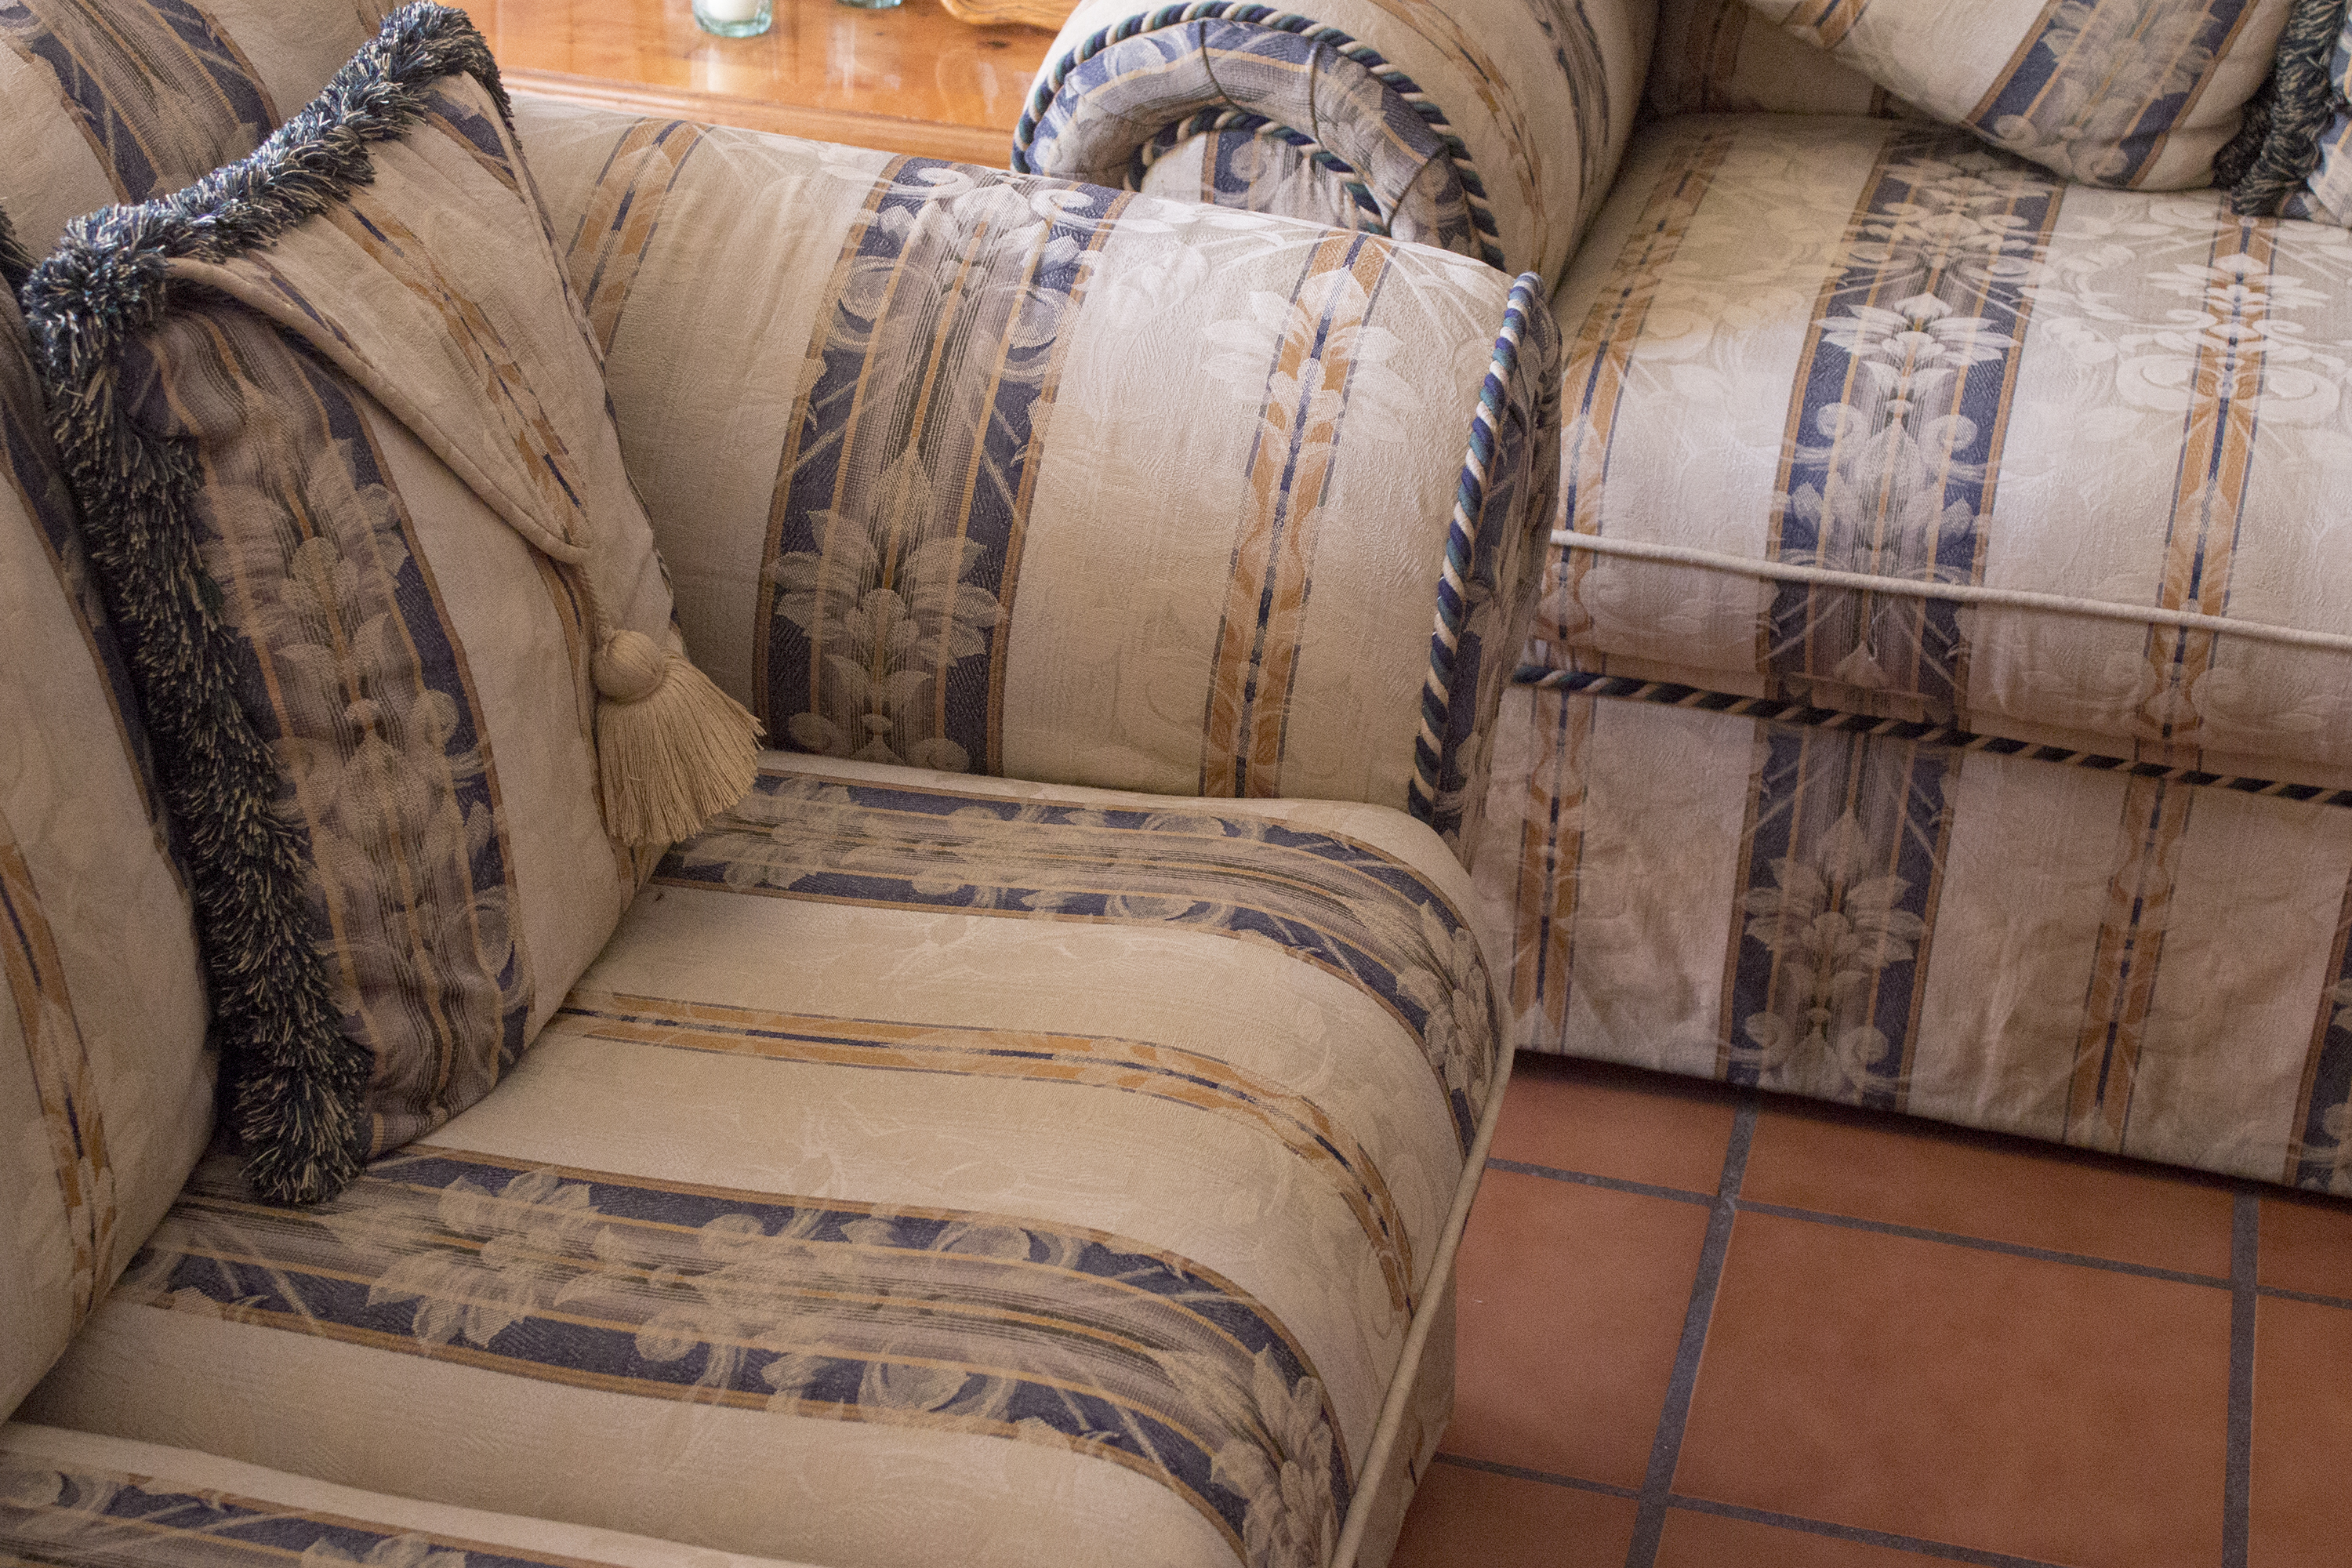 How To Clean A Couch Without Professional Cleaning Home